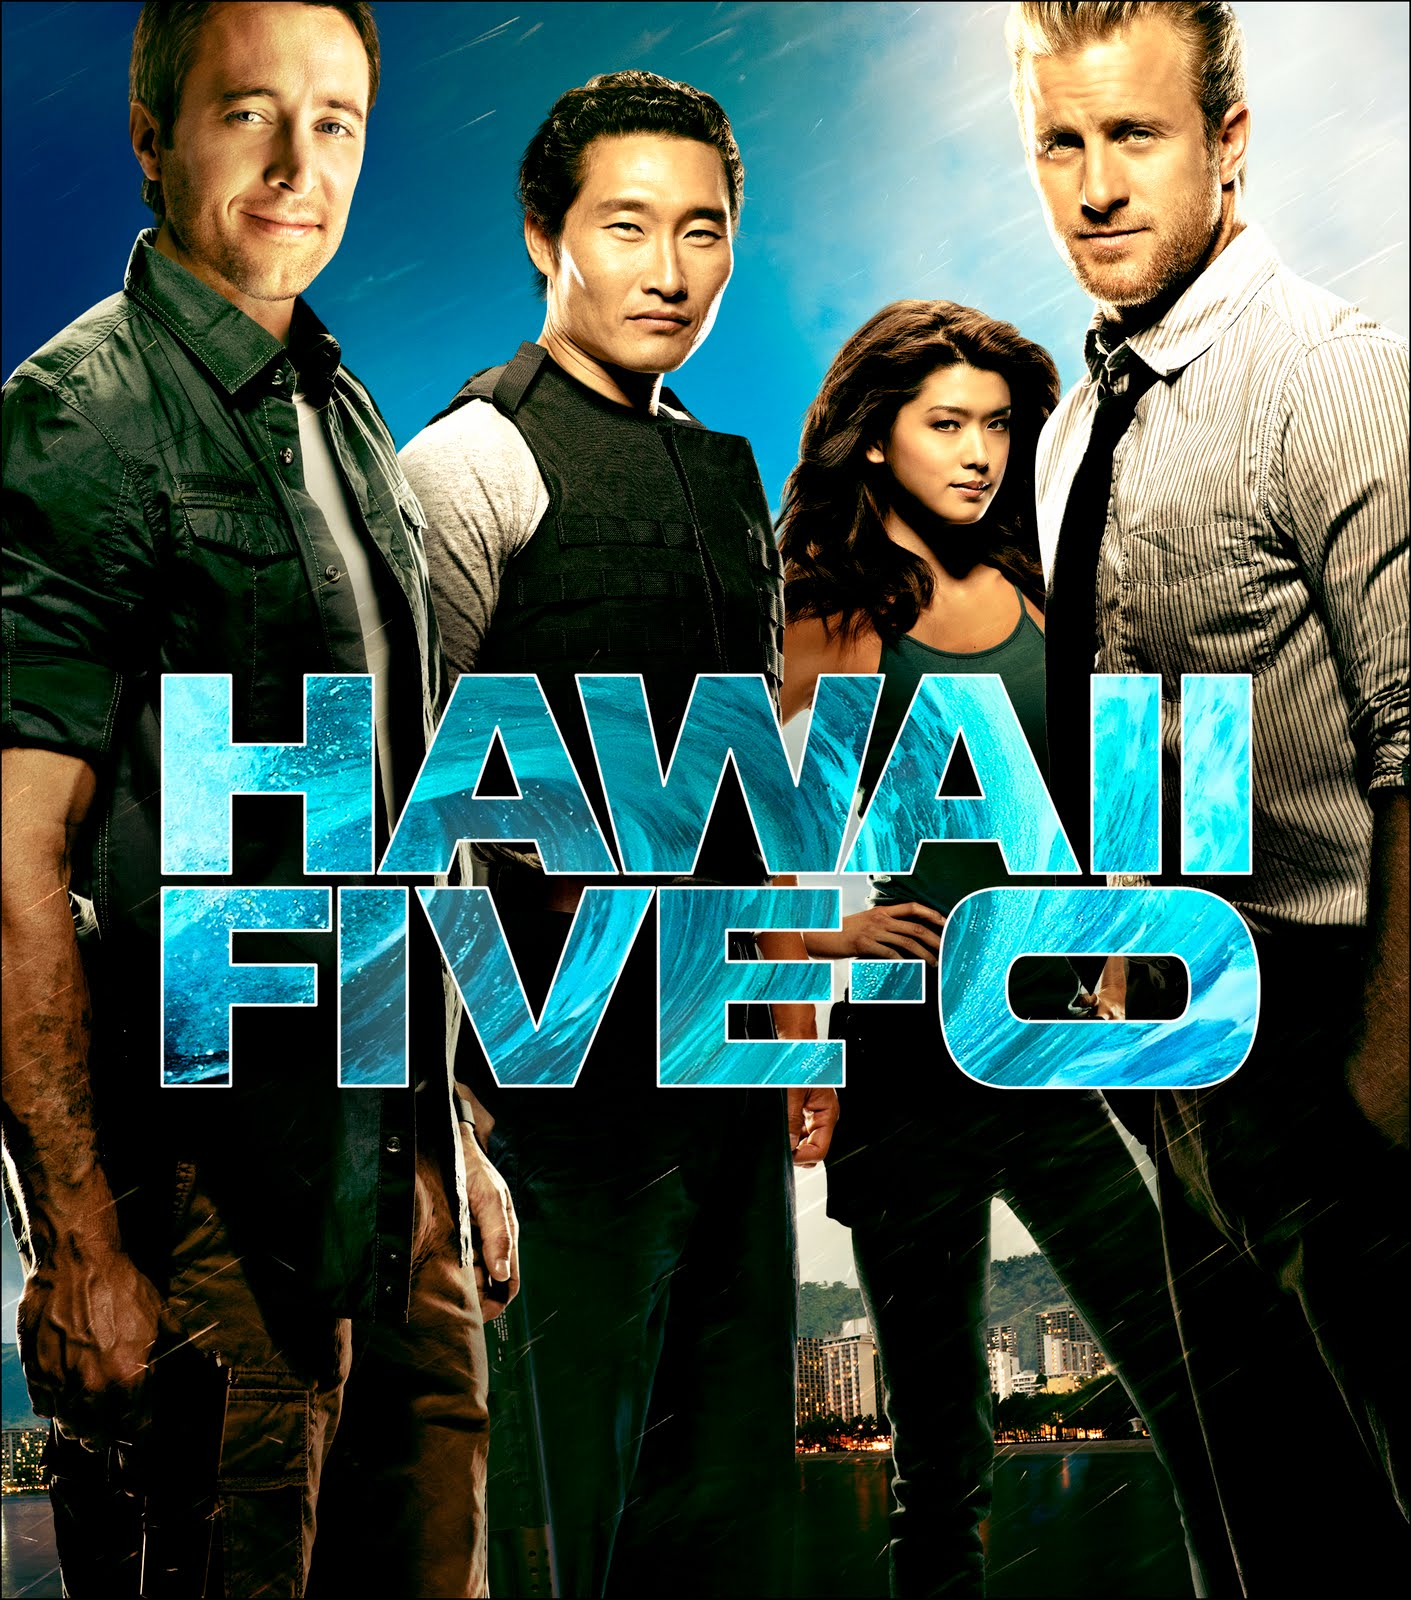 Hawaii Five-O Season 5